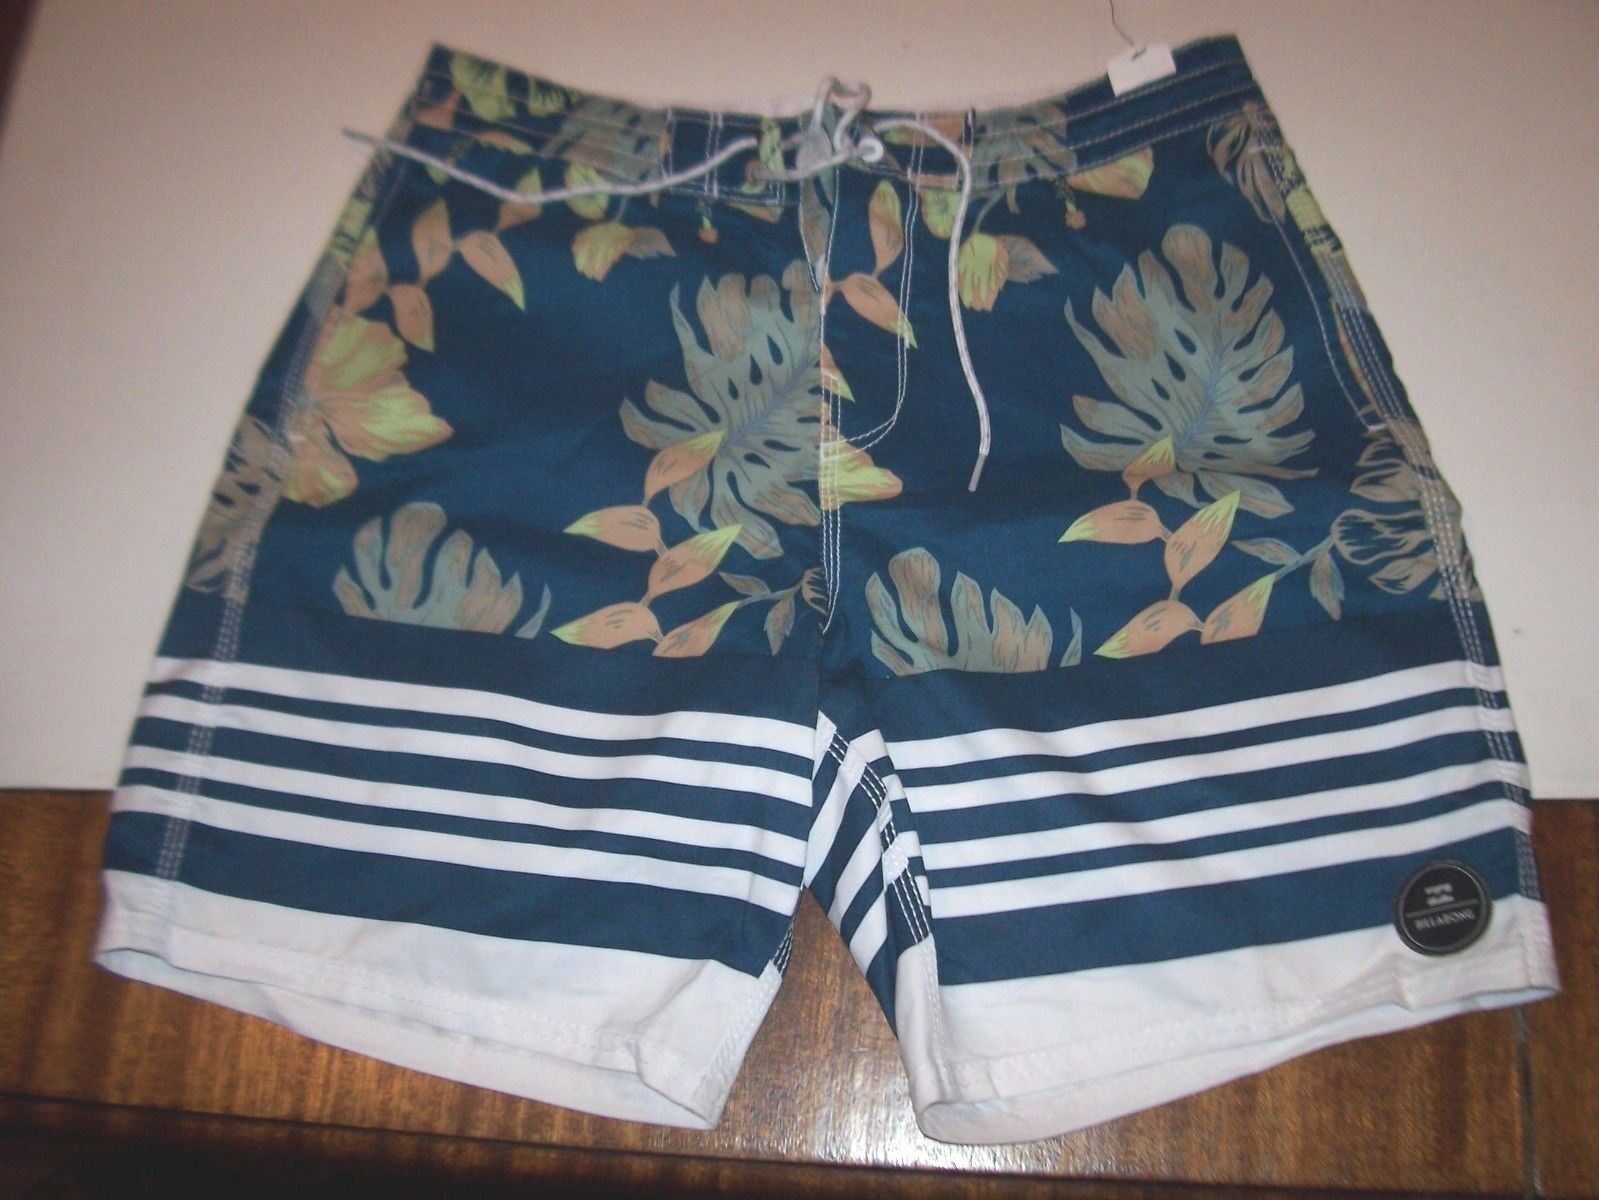 NEW BILLABONG swim board shorts trunks teal bluee floral Lo Tides 34 36 38